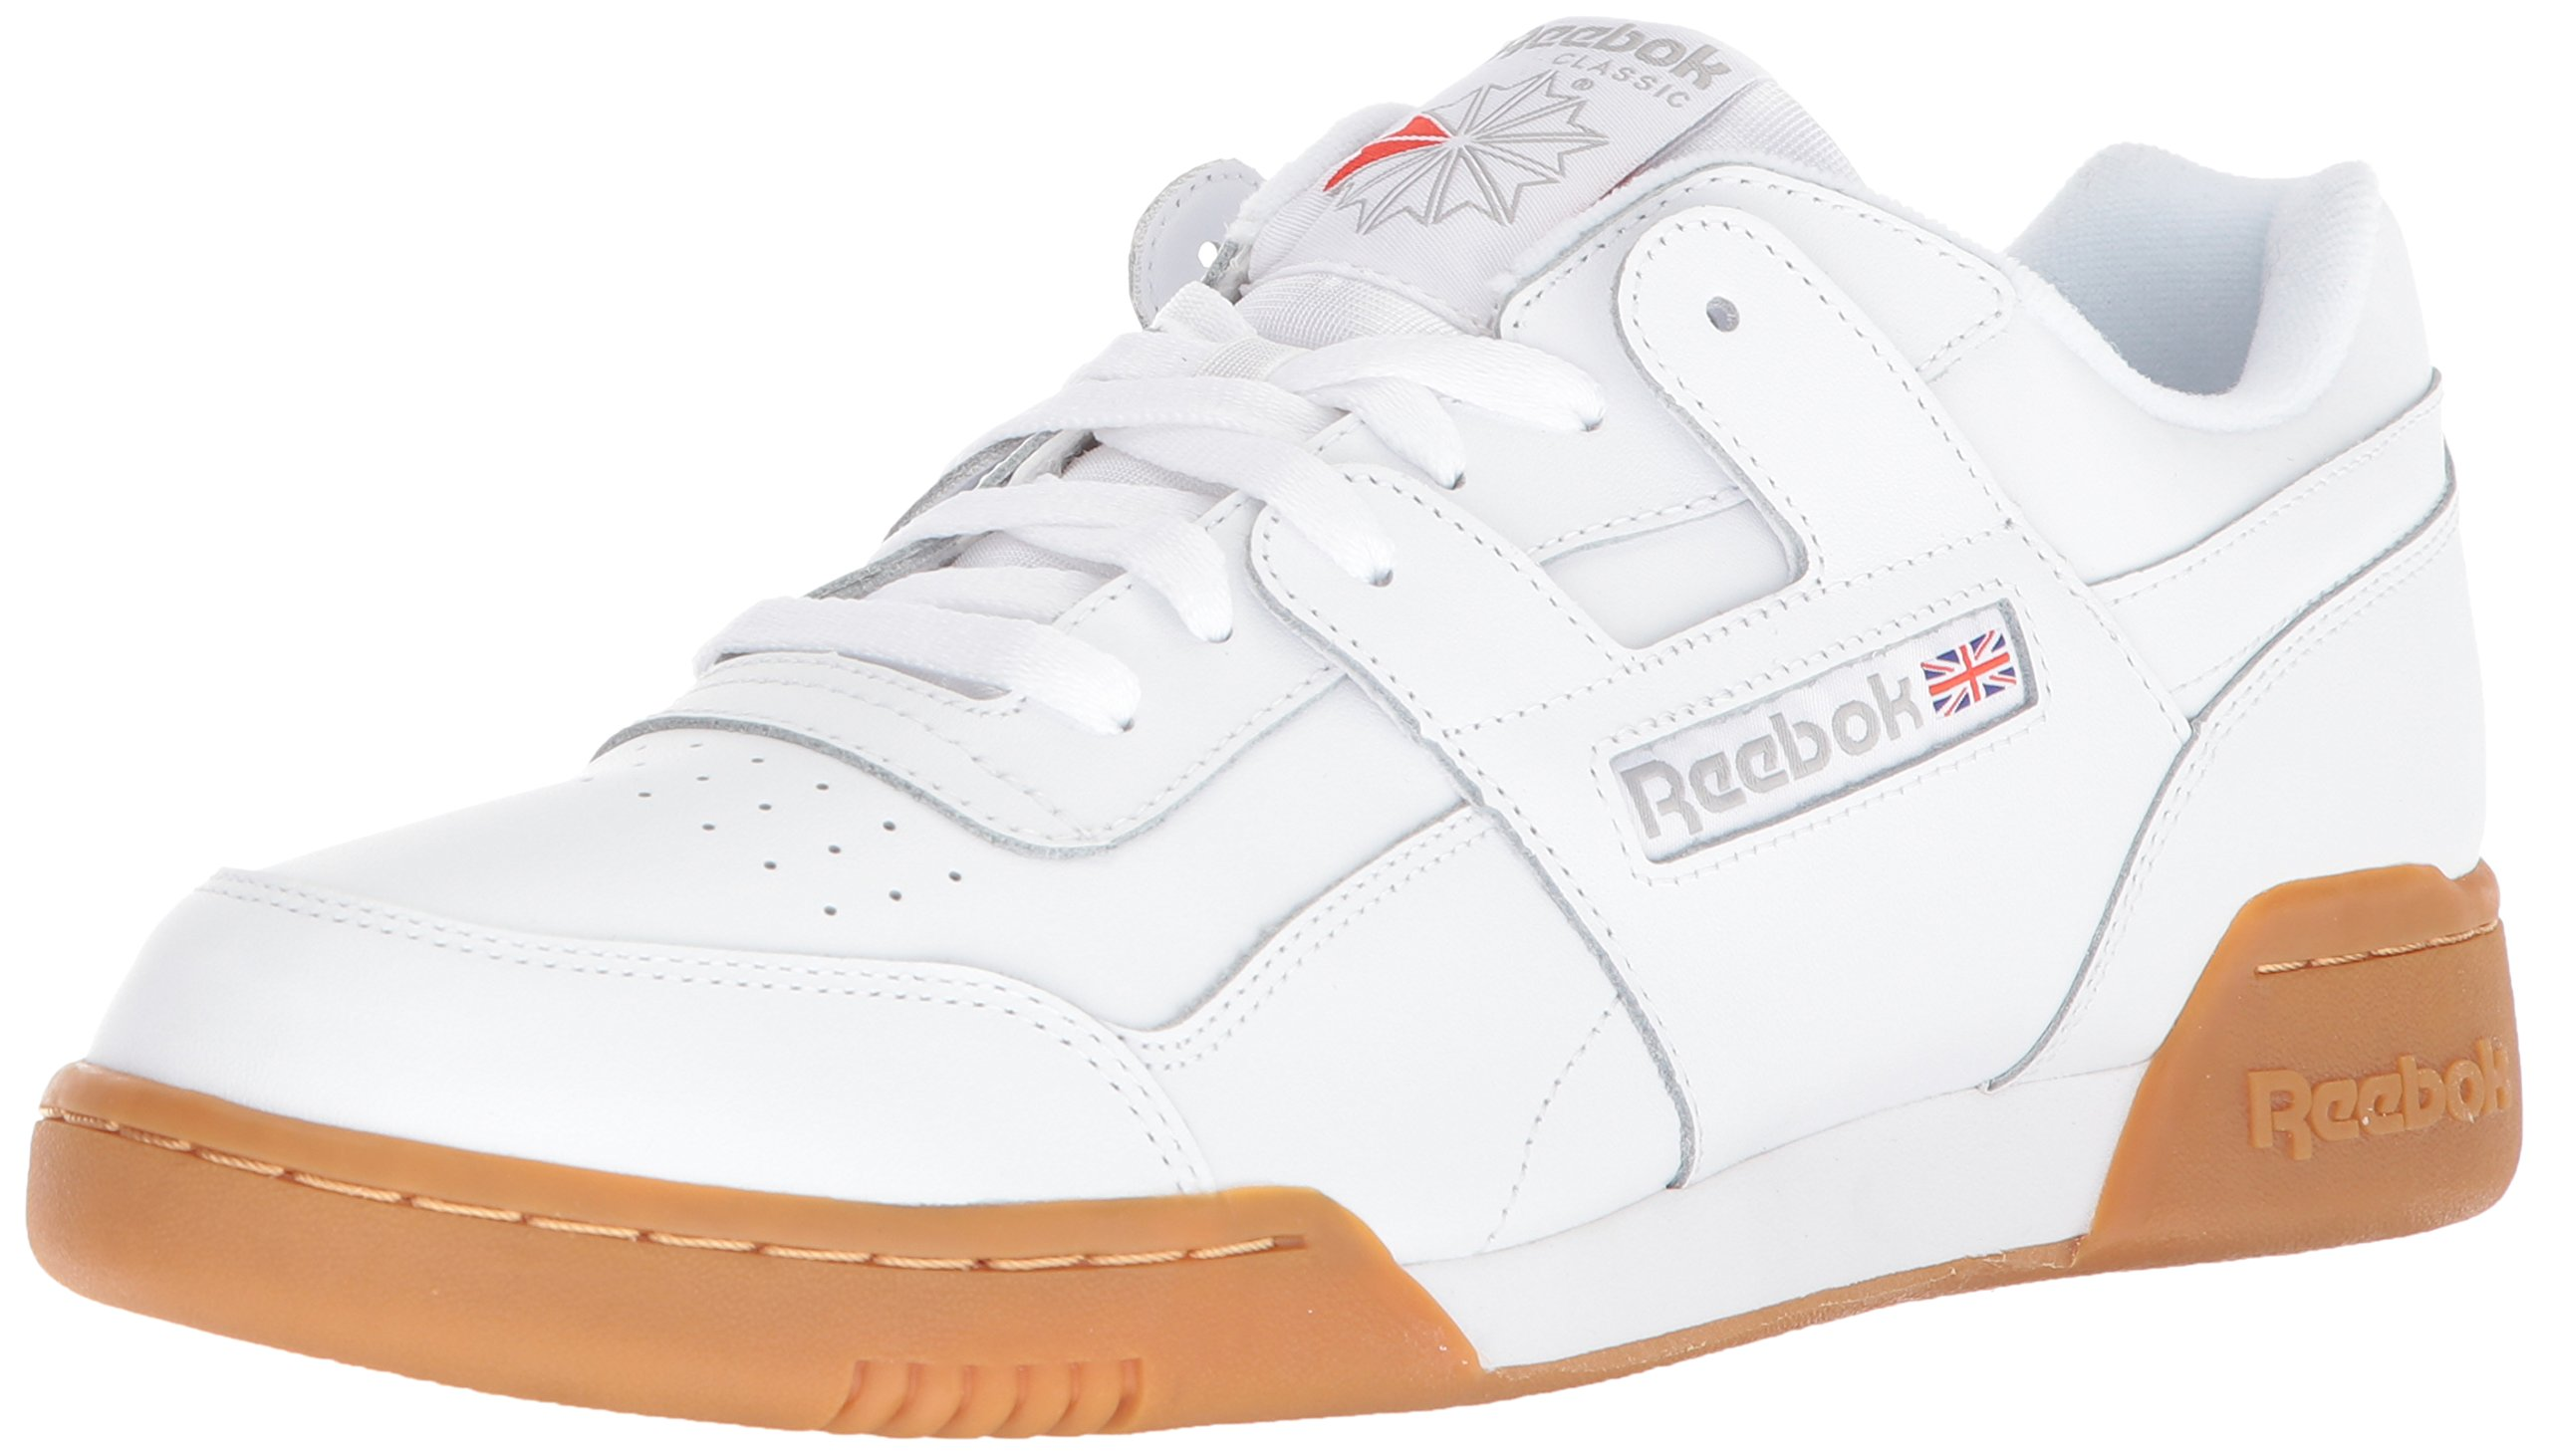 Reebok Men's Workout Plus Cross Trainer, White/Carbon/Classic Red, 10.5 M US by Reebok